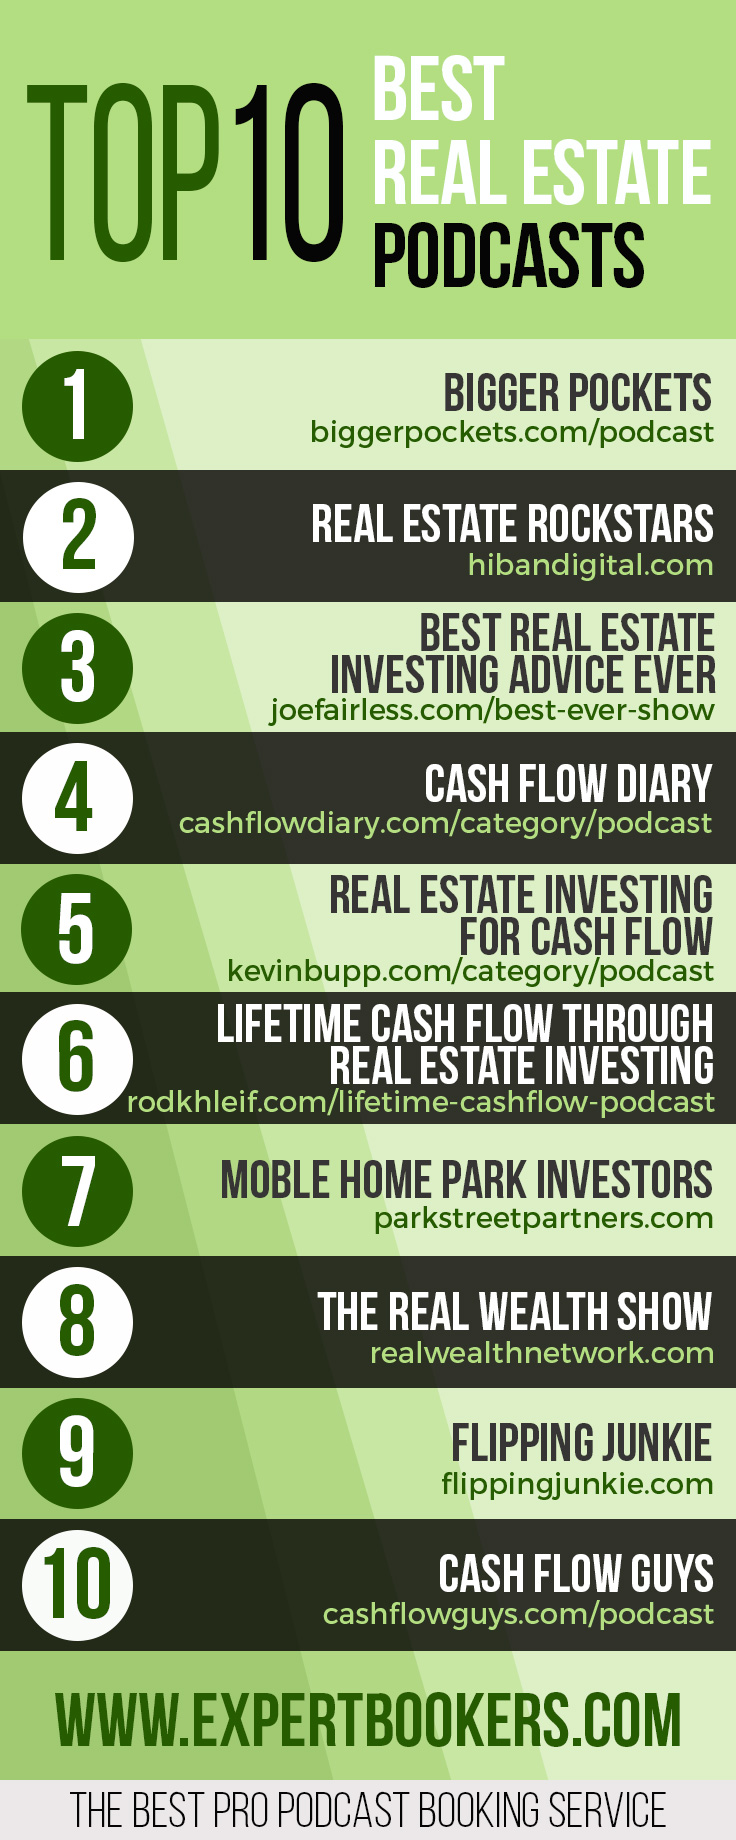 TopTEN-Real-Estate-Podcasts-pinterest-2017.jpg